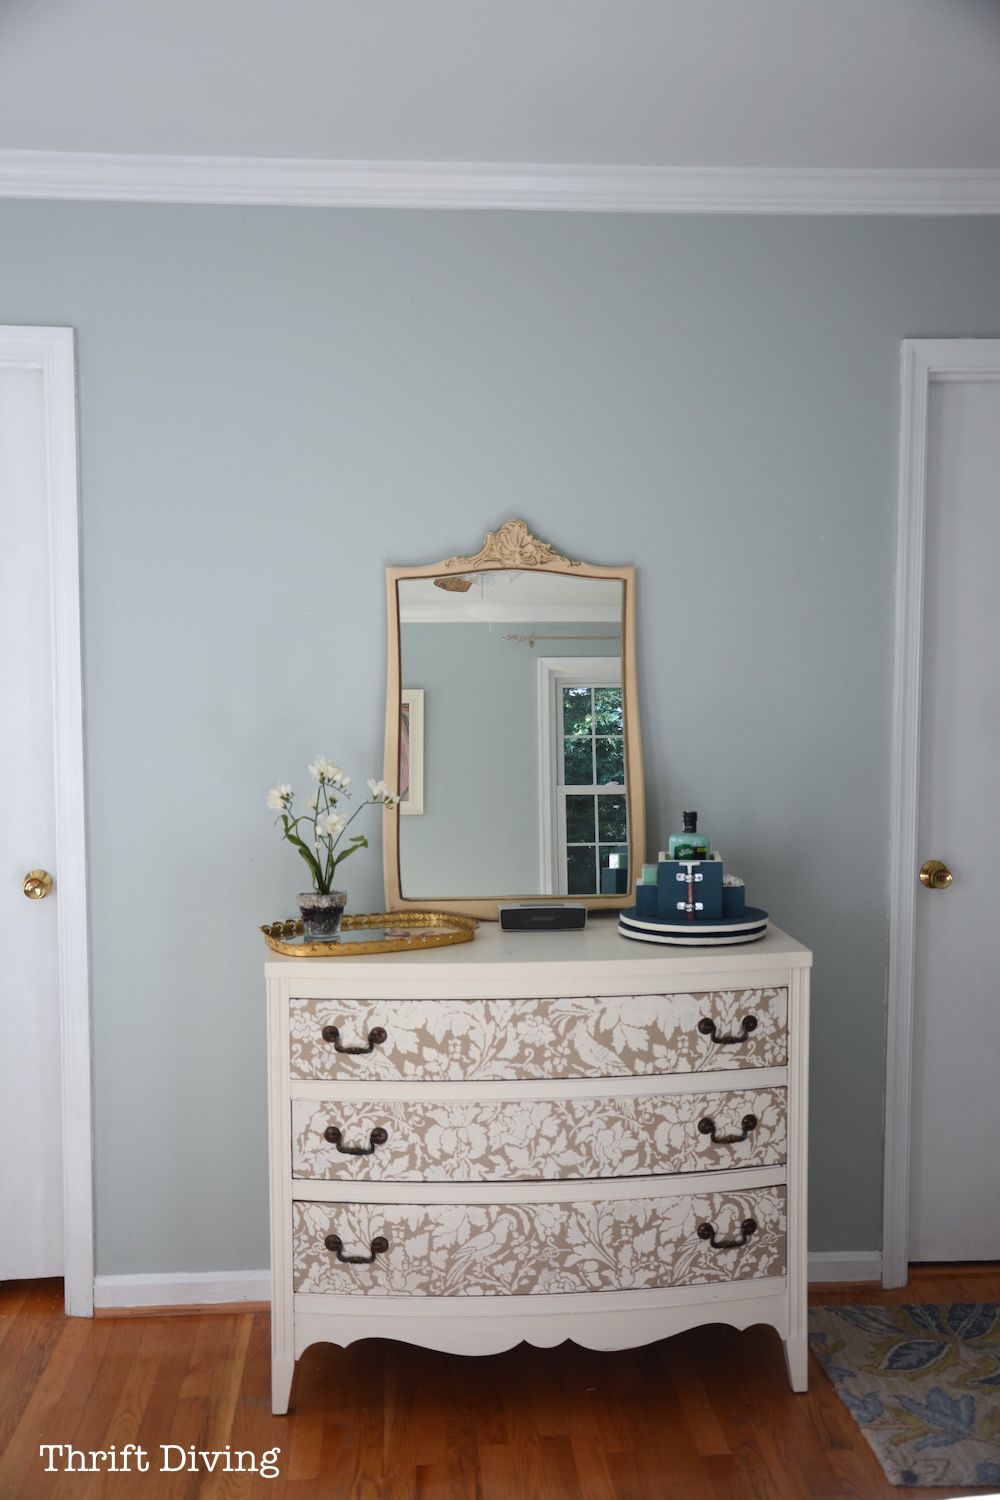 Sherwin Williams Sea Salt and Rainwashed Bedroom paint